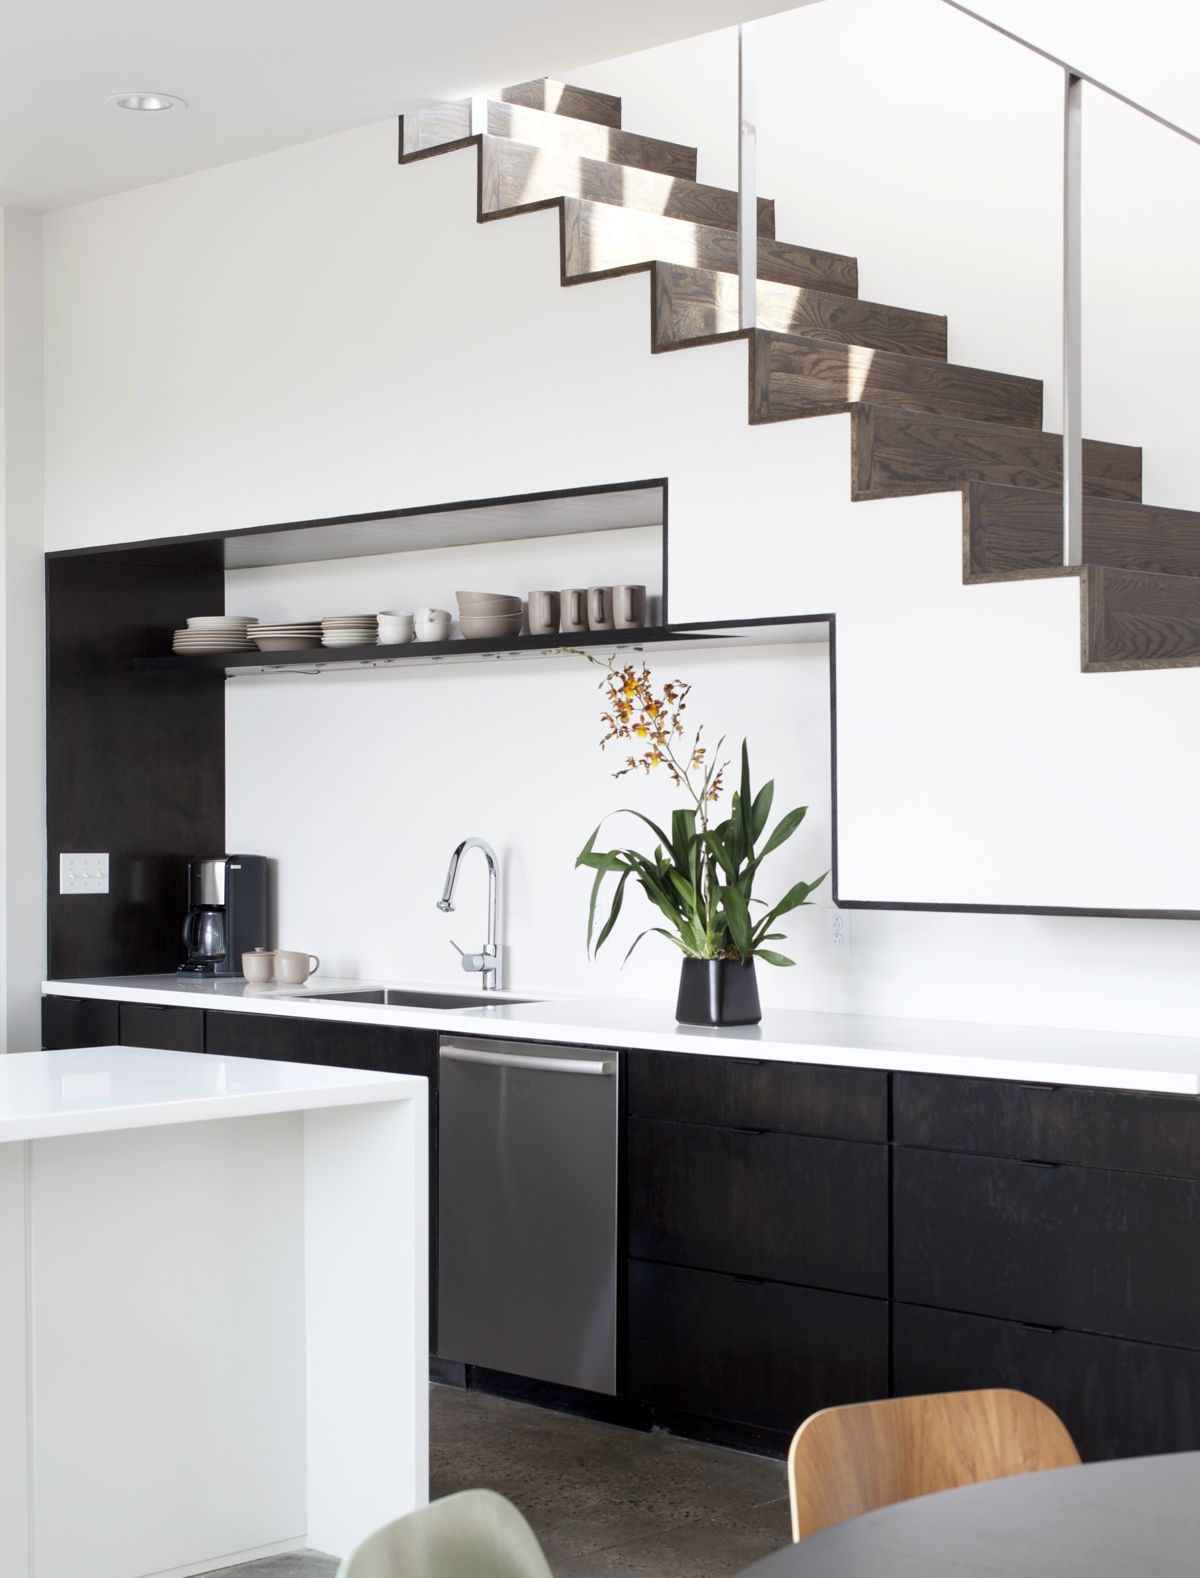 HOME Under the stairs space ideas   Kitchen under stairs ...